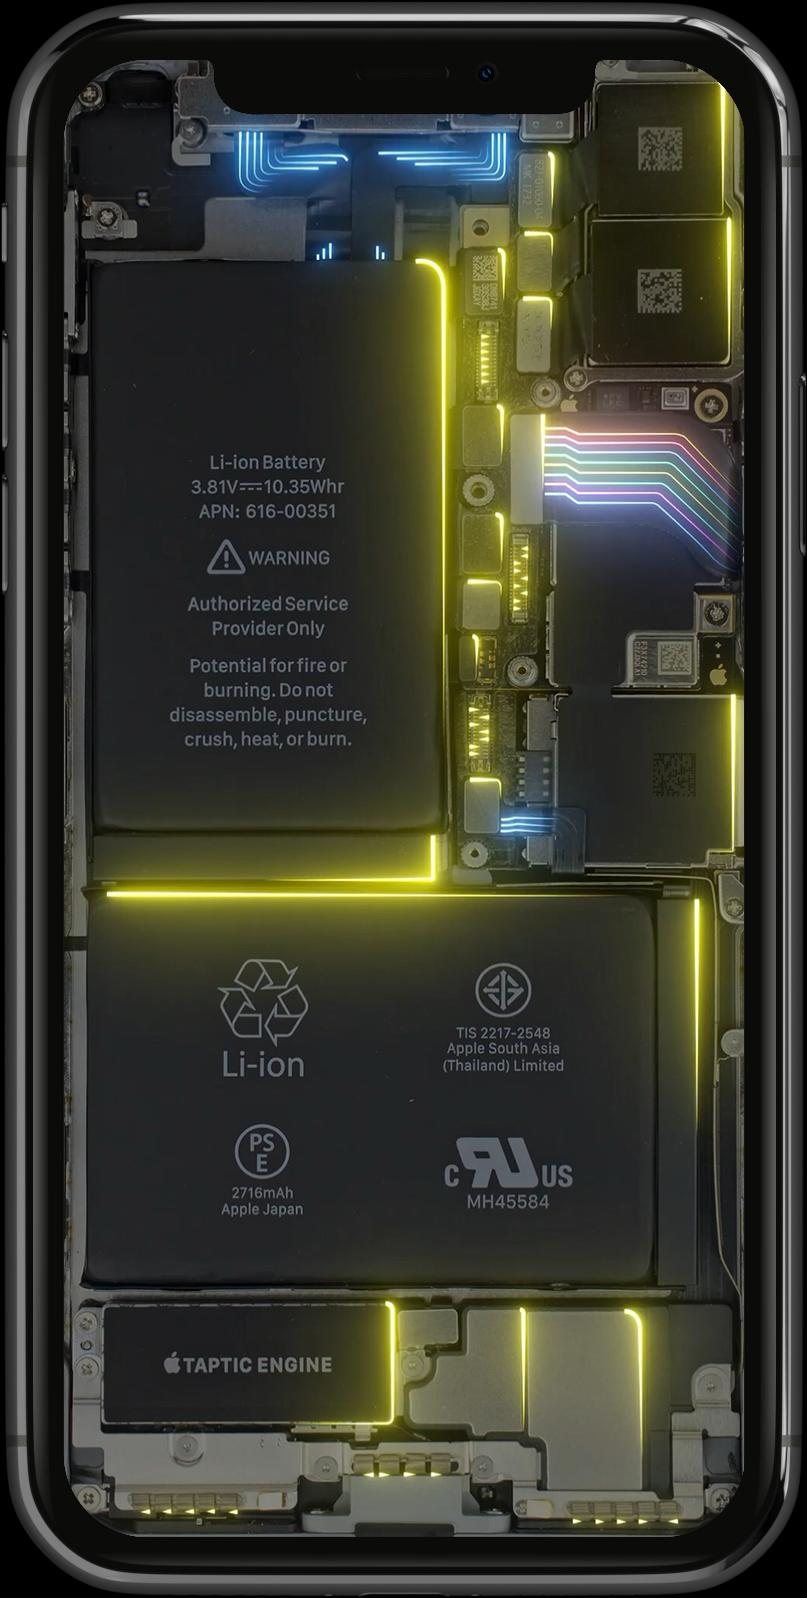 Phone Electricity Live Wallpaper Hd For Android Apk Download